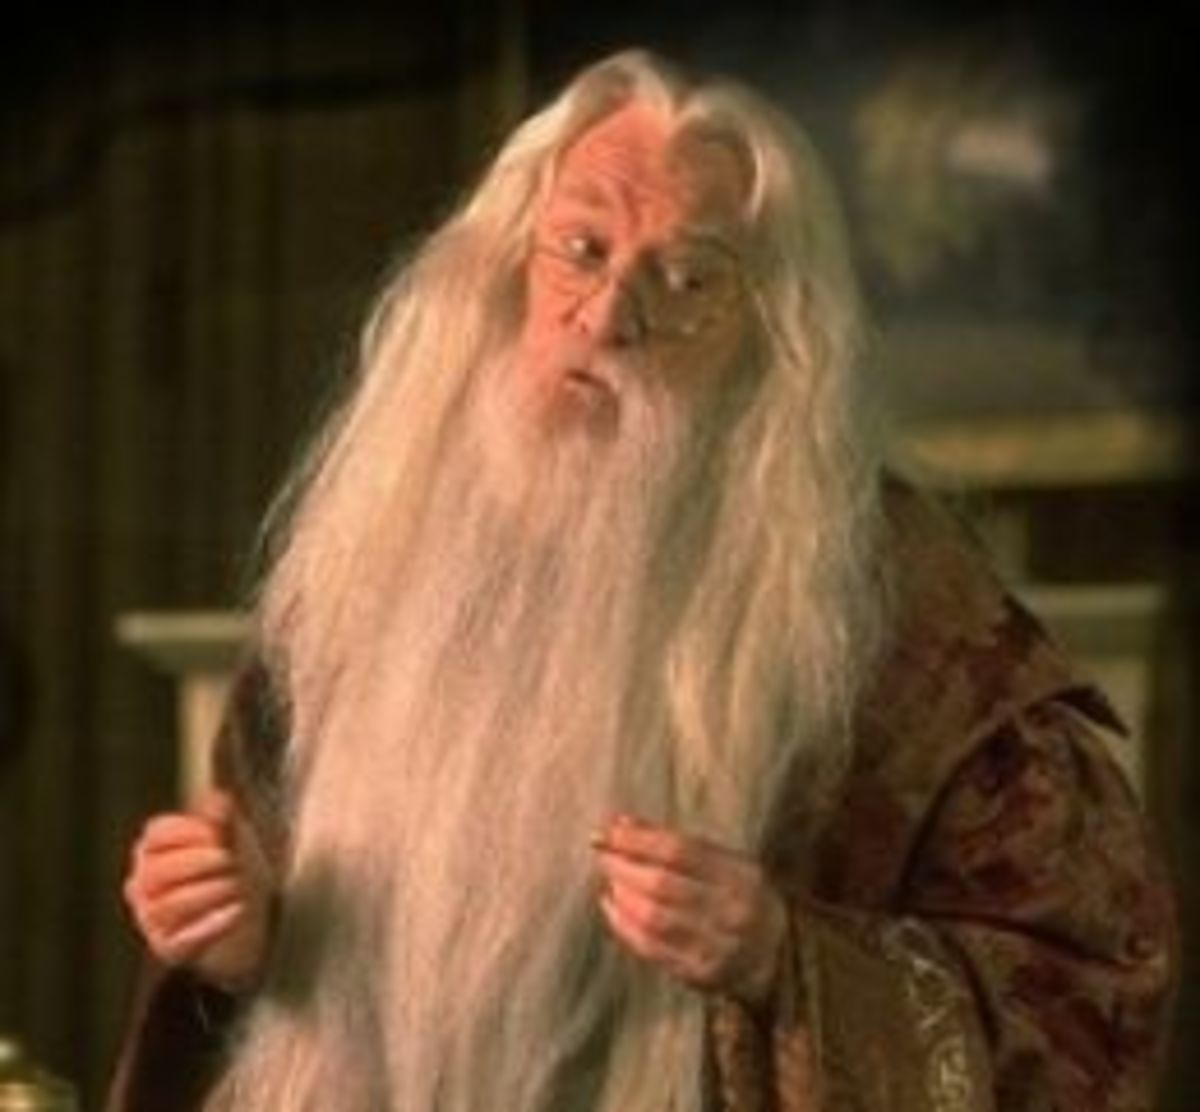 Richard Harris as Albus Dumbledore in the series Harry Potter